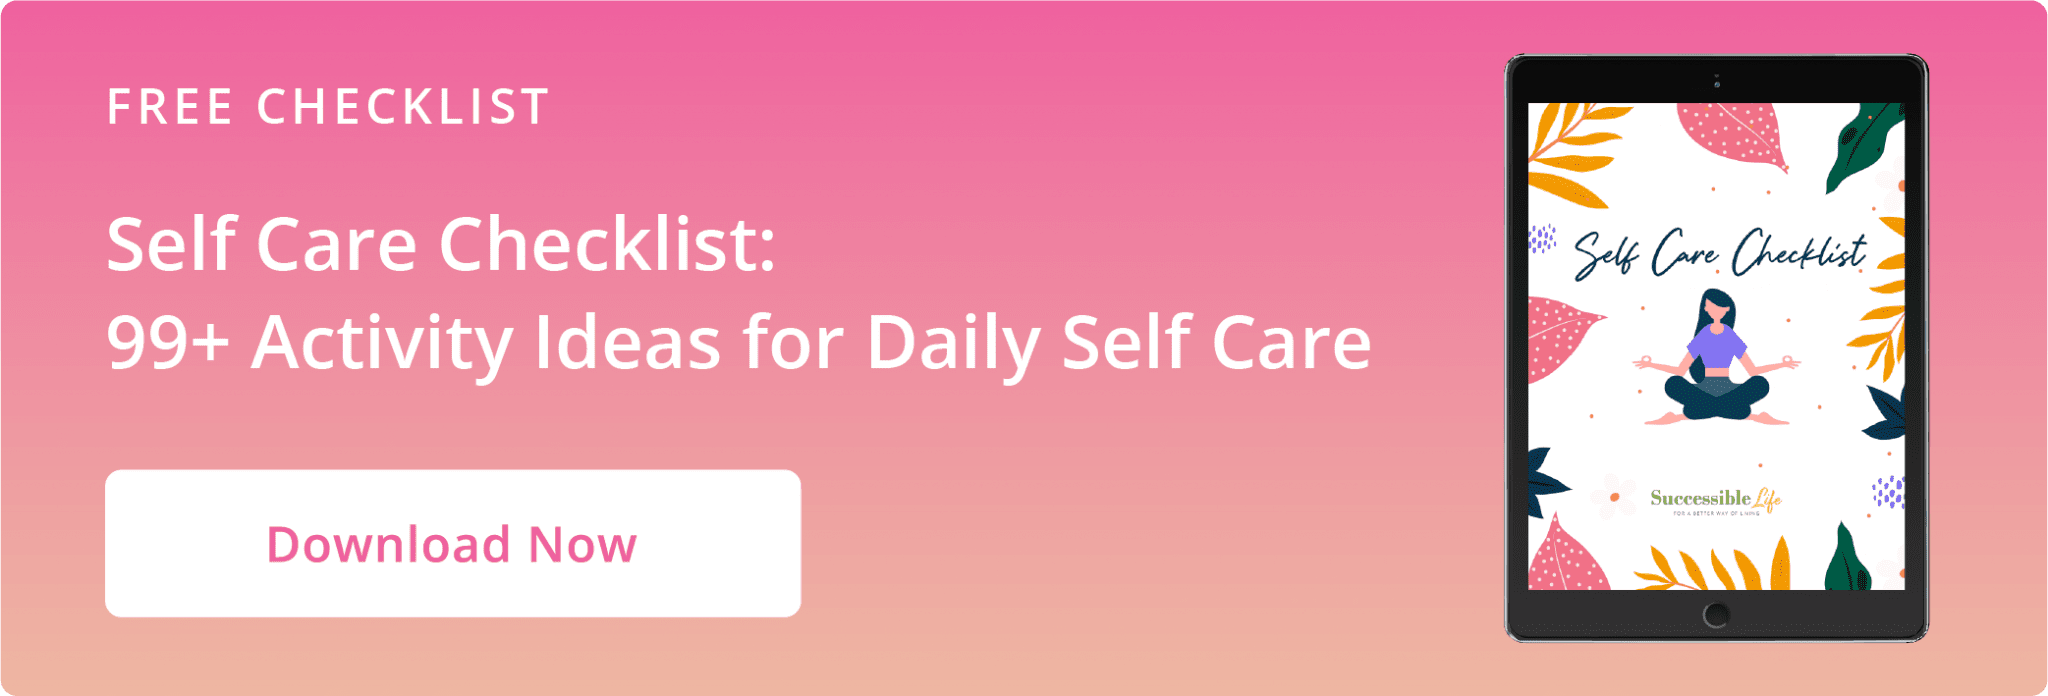 Article CTA Graphic - Self Care Checklist